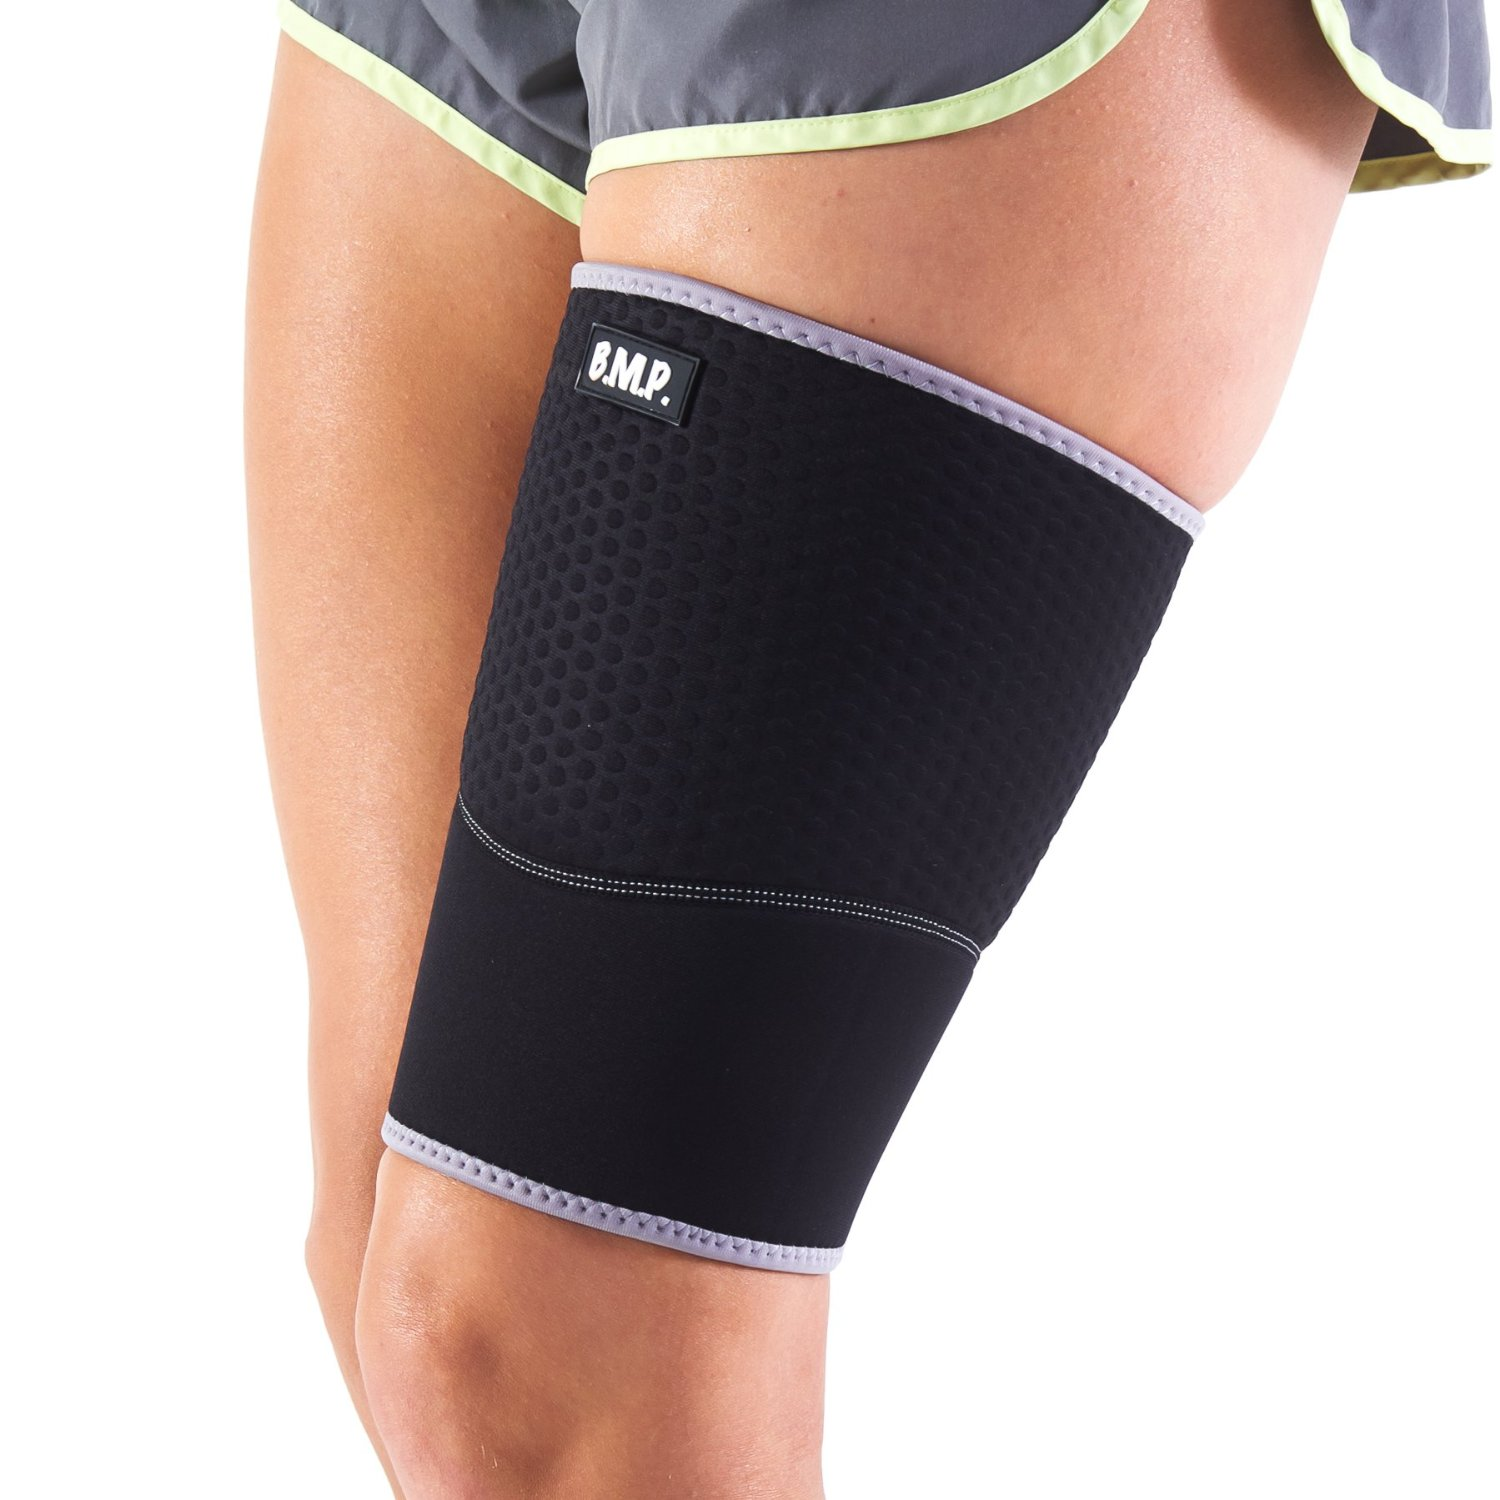 0d69a0cb70 Lightweight and Breathable Black Thigh Brace / Compression Sleeve